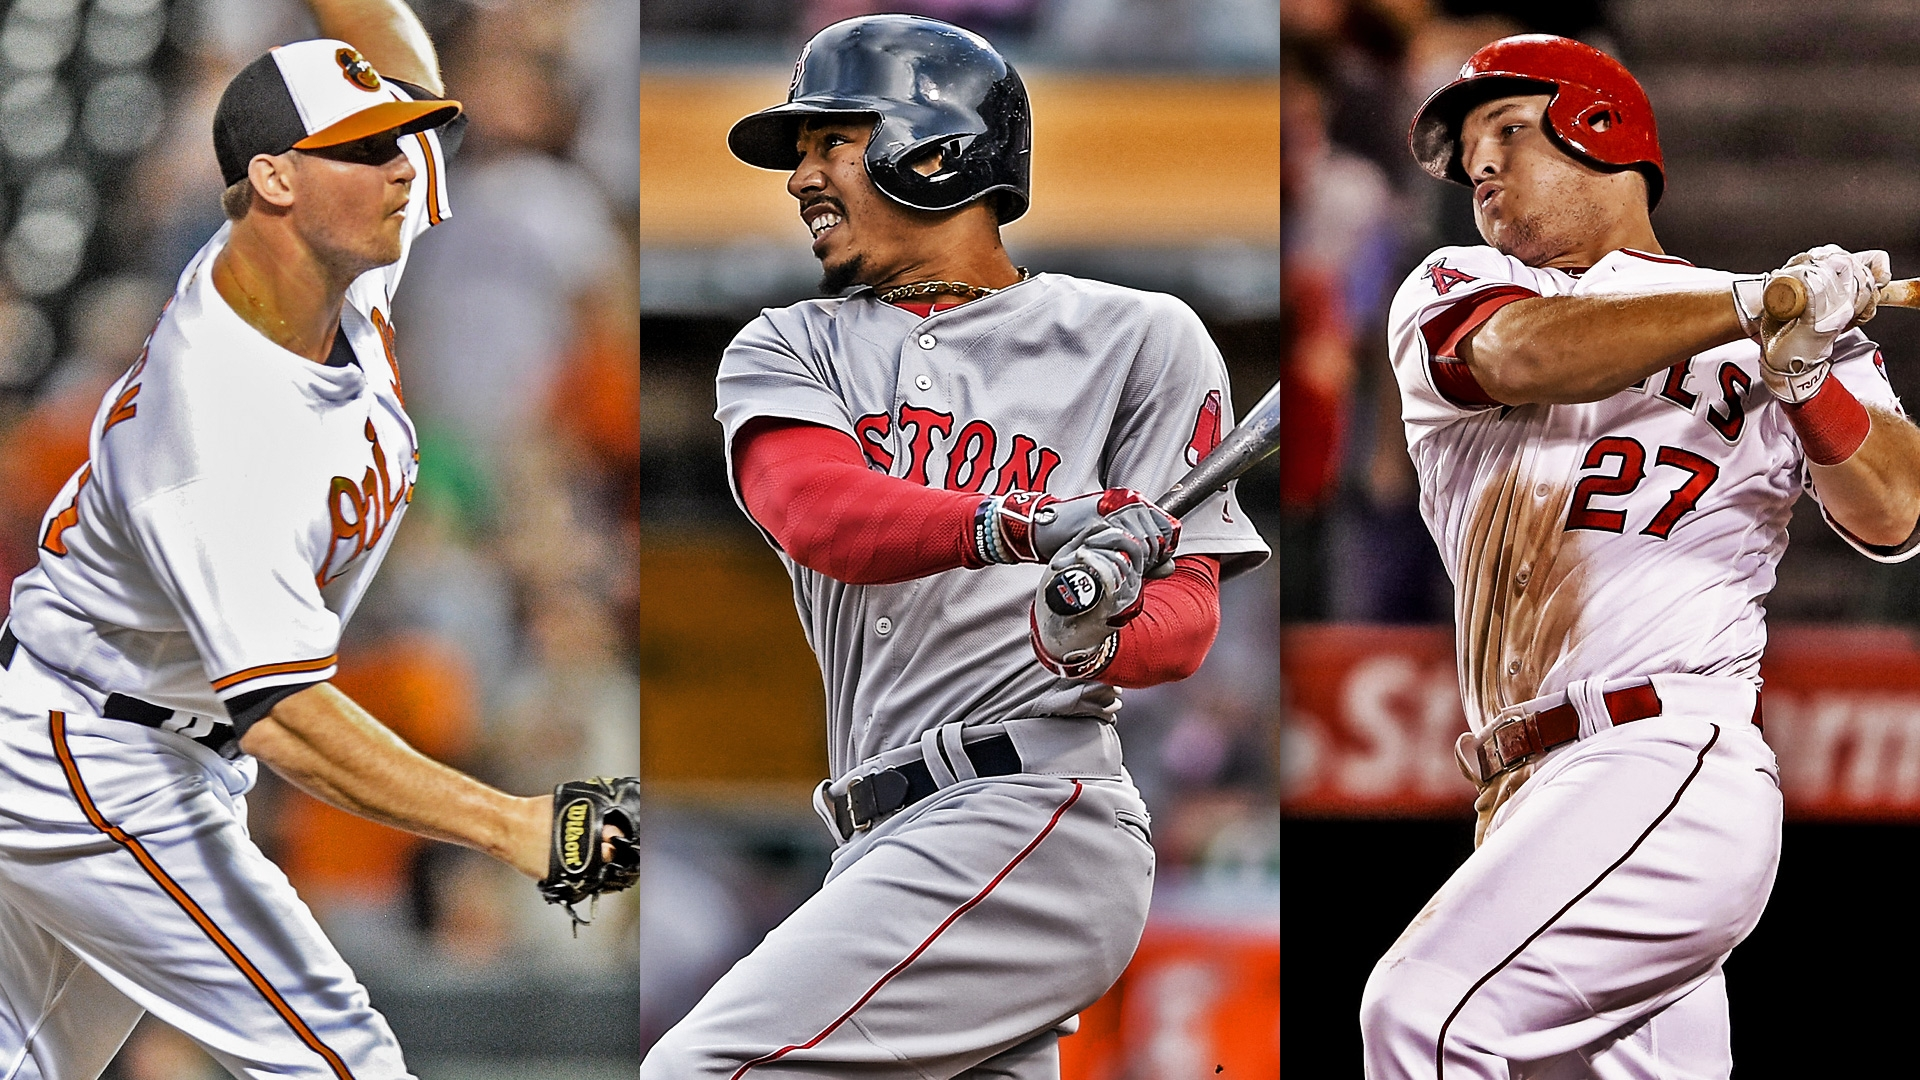 Split-allstar-britton-betts-trout-101116-getty-ftrjpg_1xeoyavukwcg21ub4fcvbi74cl